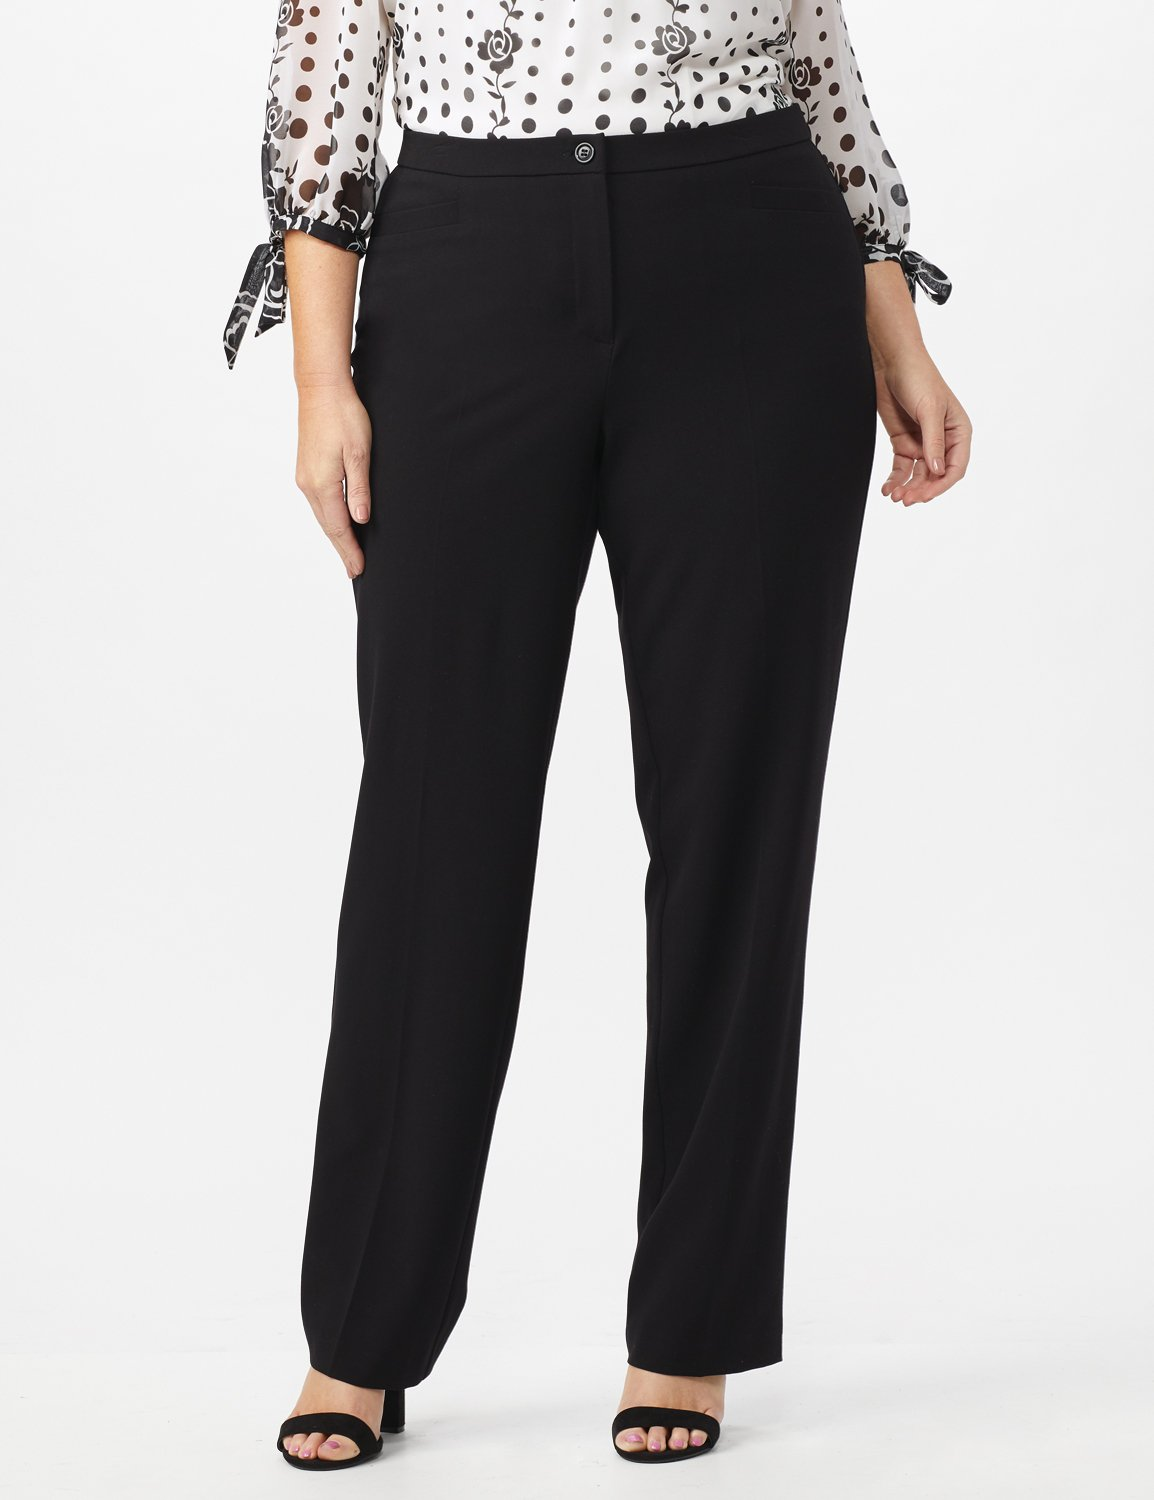 Secret Agent Pants with Cat Eye Pockets & Zip -Black - Front